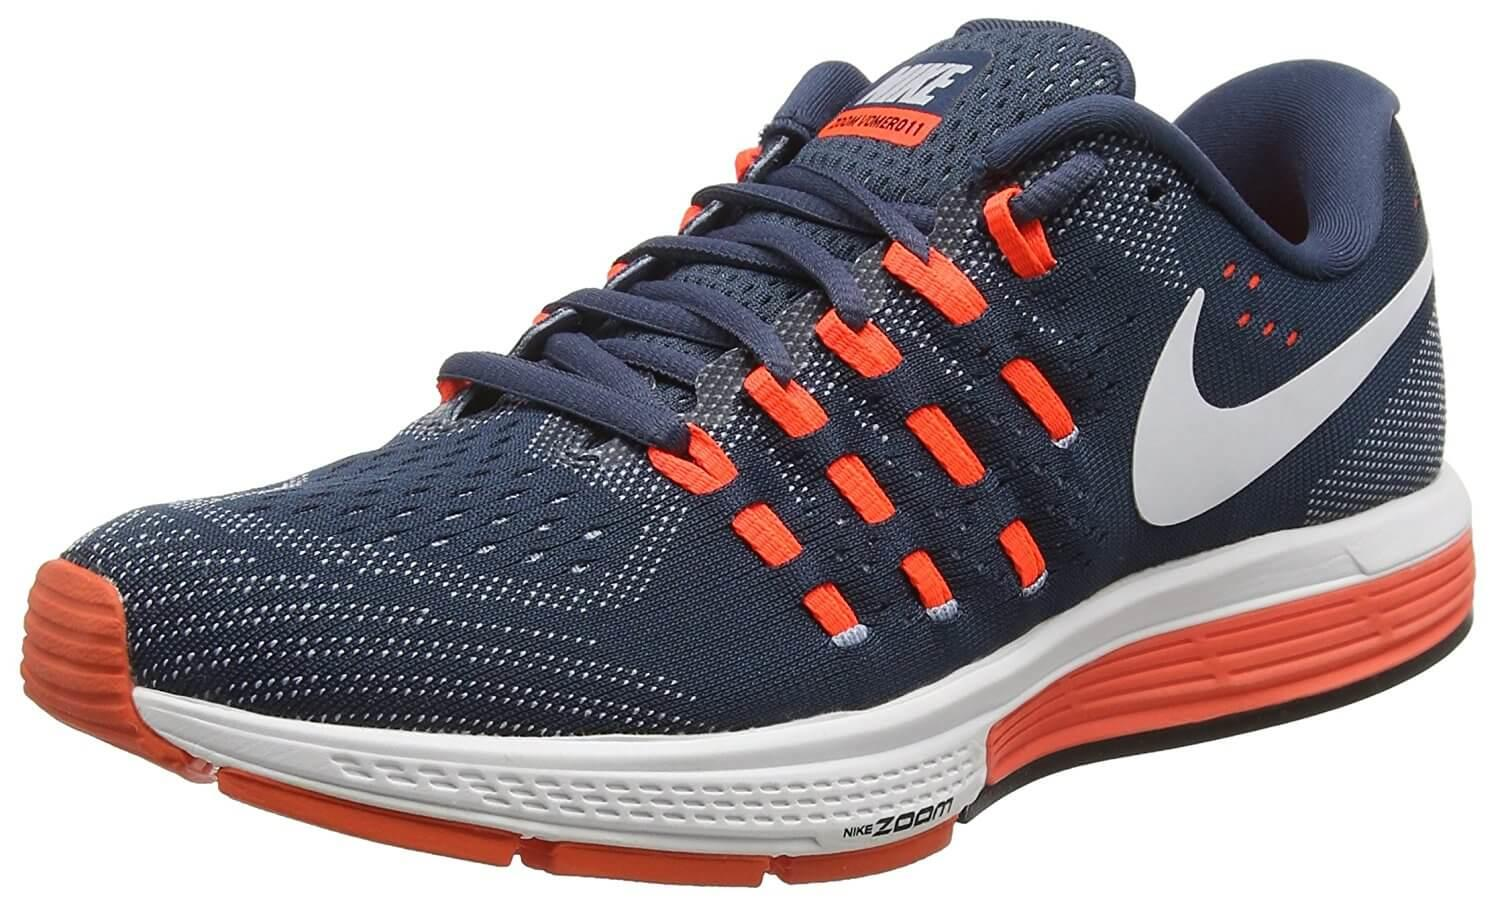 03b77ff0929b the Nike Air Zoom Vomero 11 is a durable running shoe that will last for  many ...